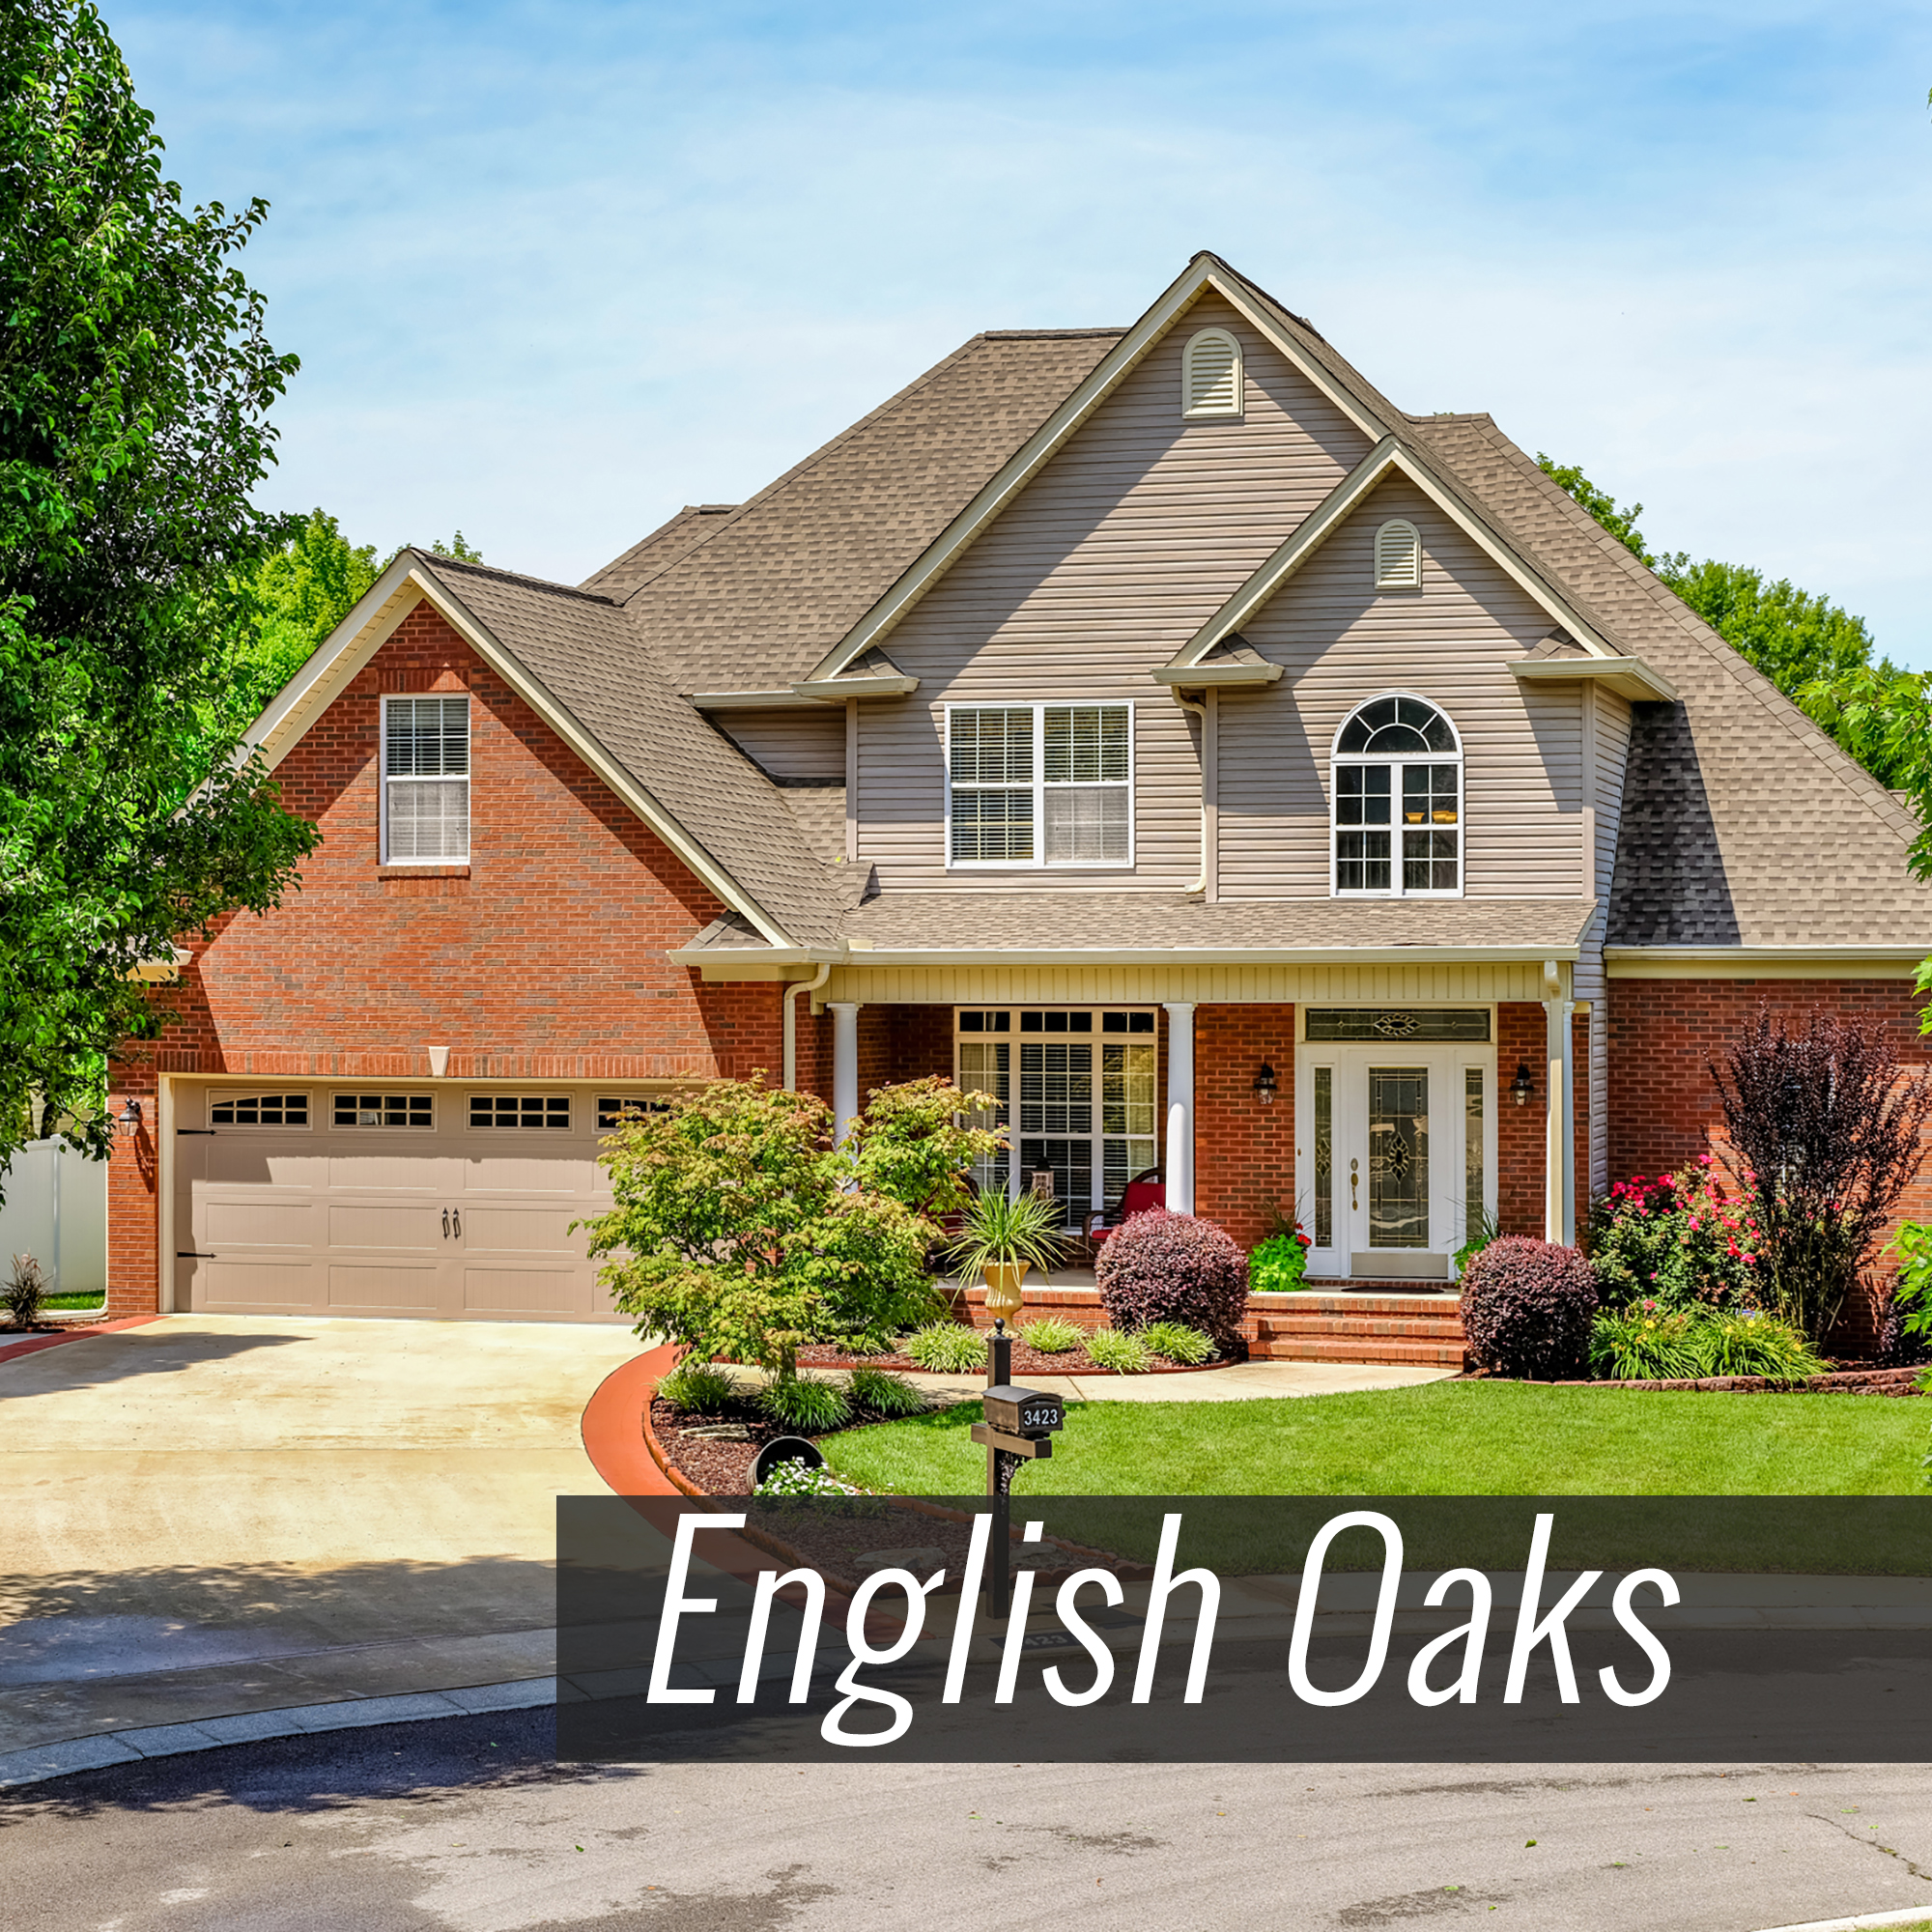 Homes for Sale in English Oaks Subdivision